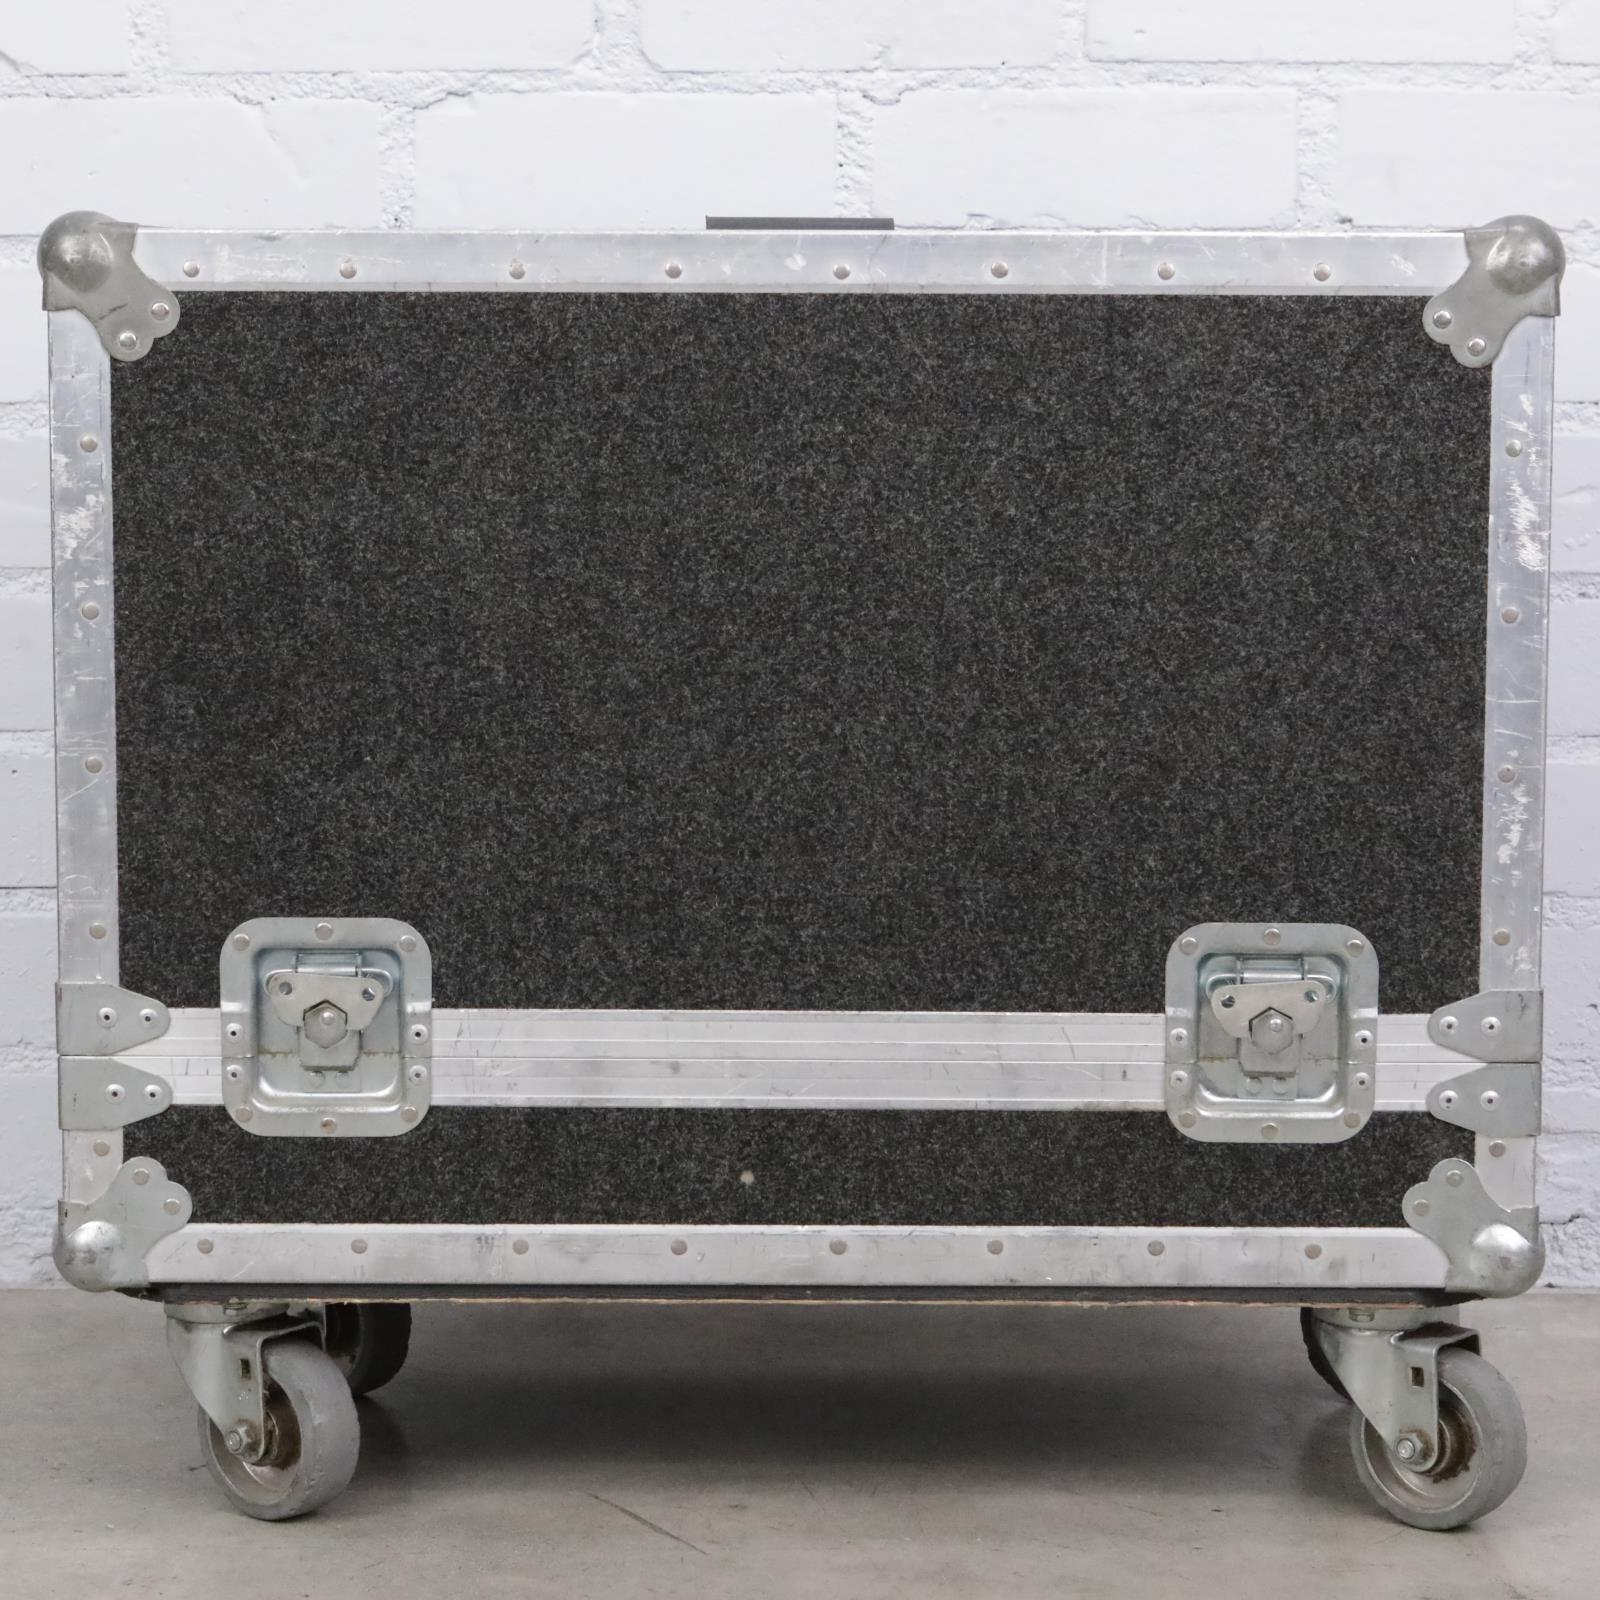 Dual Section Carpeted Speaker Monitor Utility ATA Flight Road Case #43508